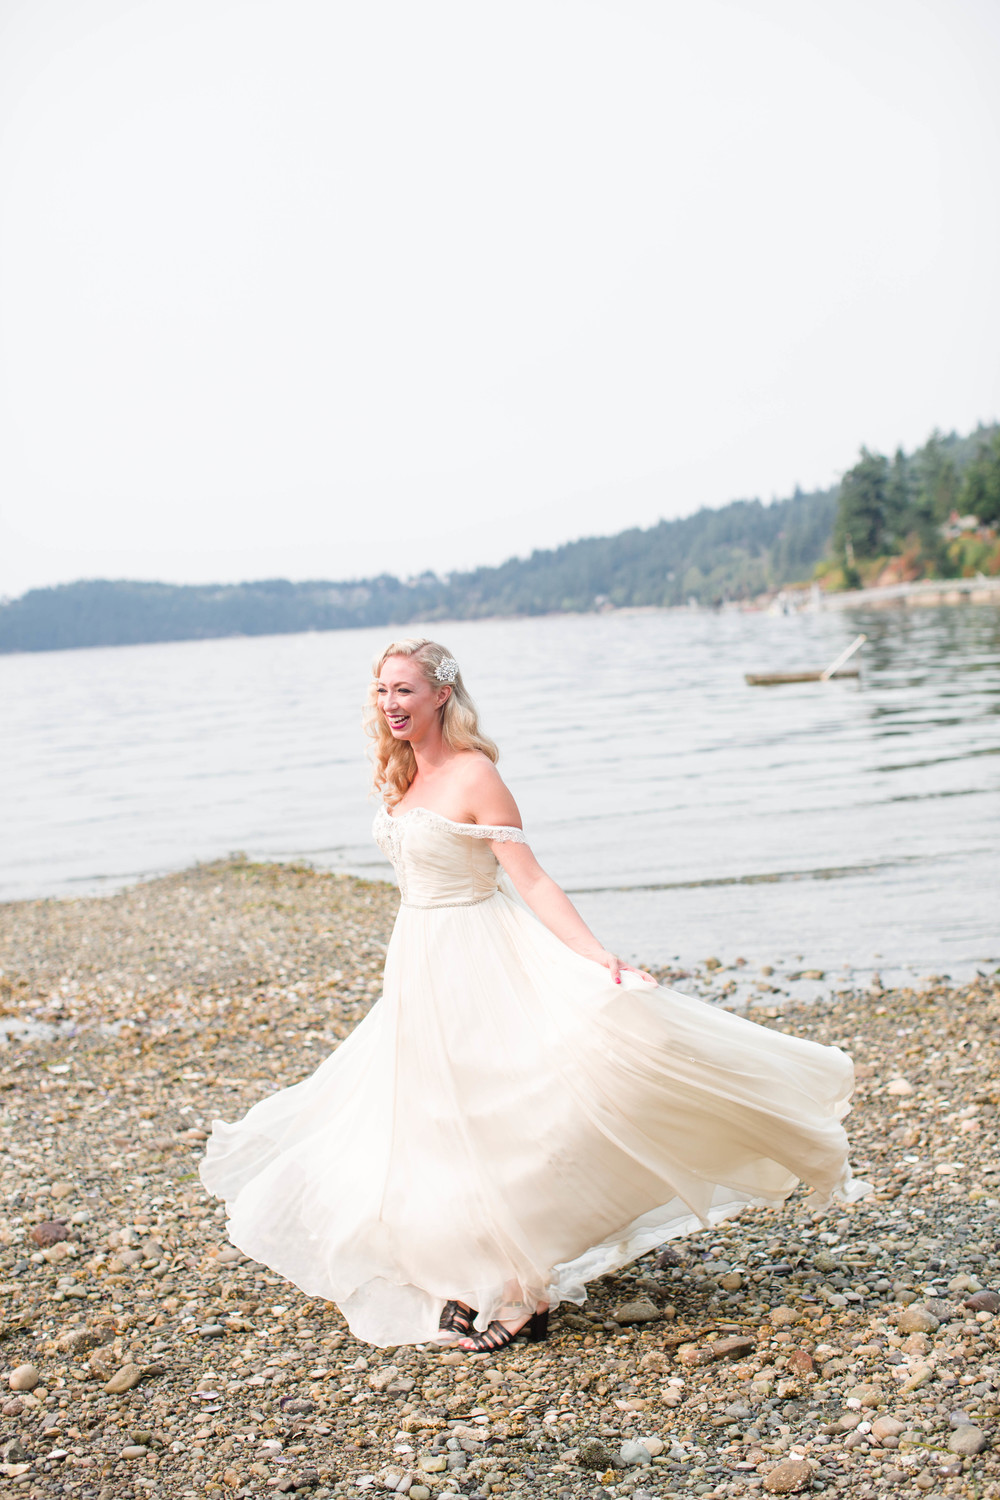 Courtney+Matt_Bellingham+Wedding_Seattle+Wedding+Photographer116.jpg